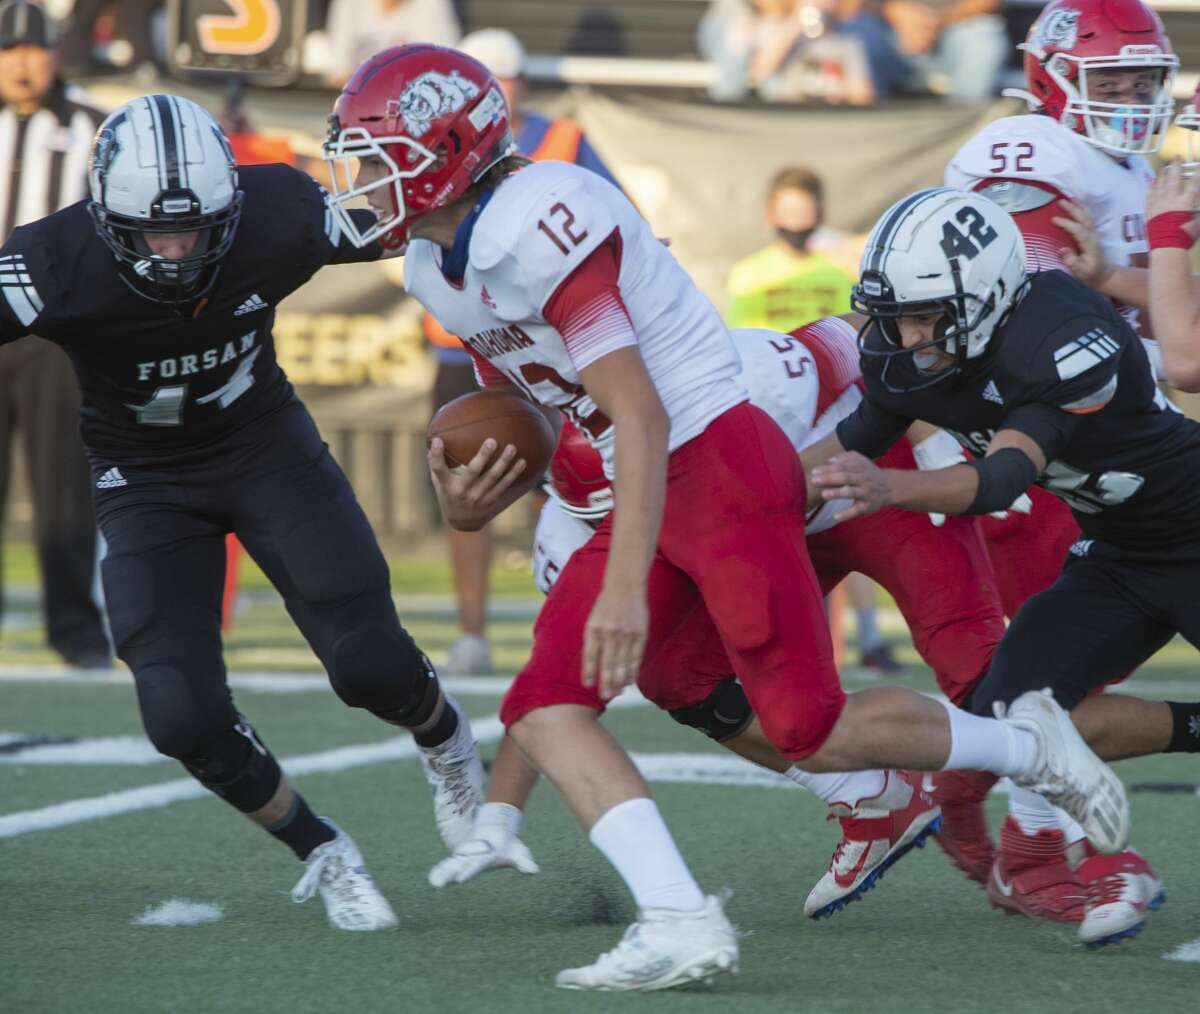 Coahoma's Kolt Redden tries to pick his way through the line and get away from Forsan's Ernesto Rivera, 42, 8/27/2020 at Big Spring Memorial Stadium. Tim Fischer/Reporter-Telegram